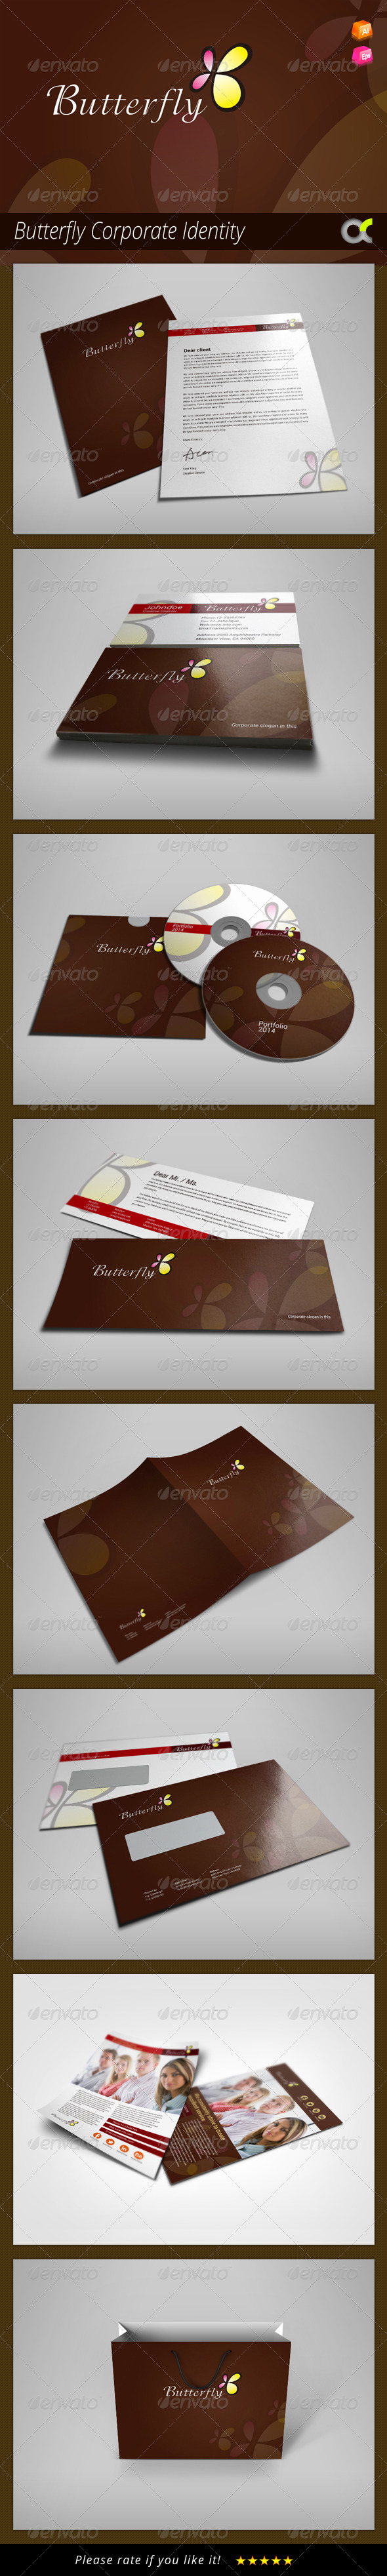 GraphicRiver Butterfly Corporate Identity 8132356